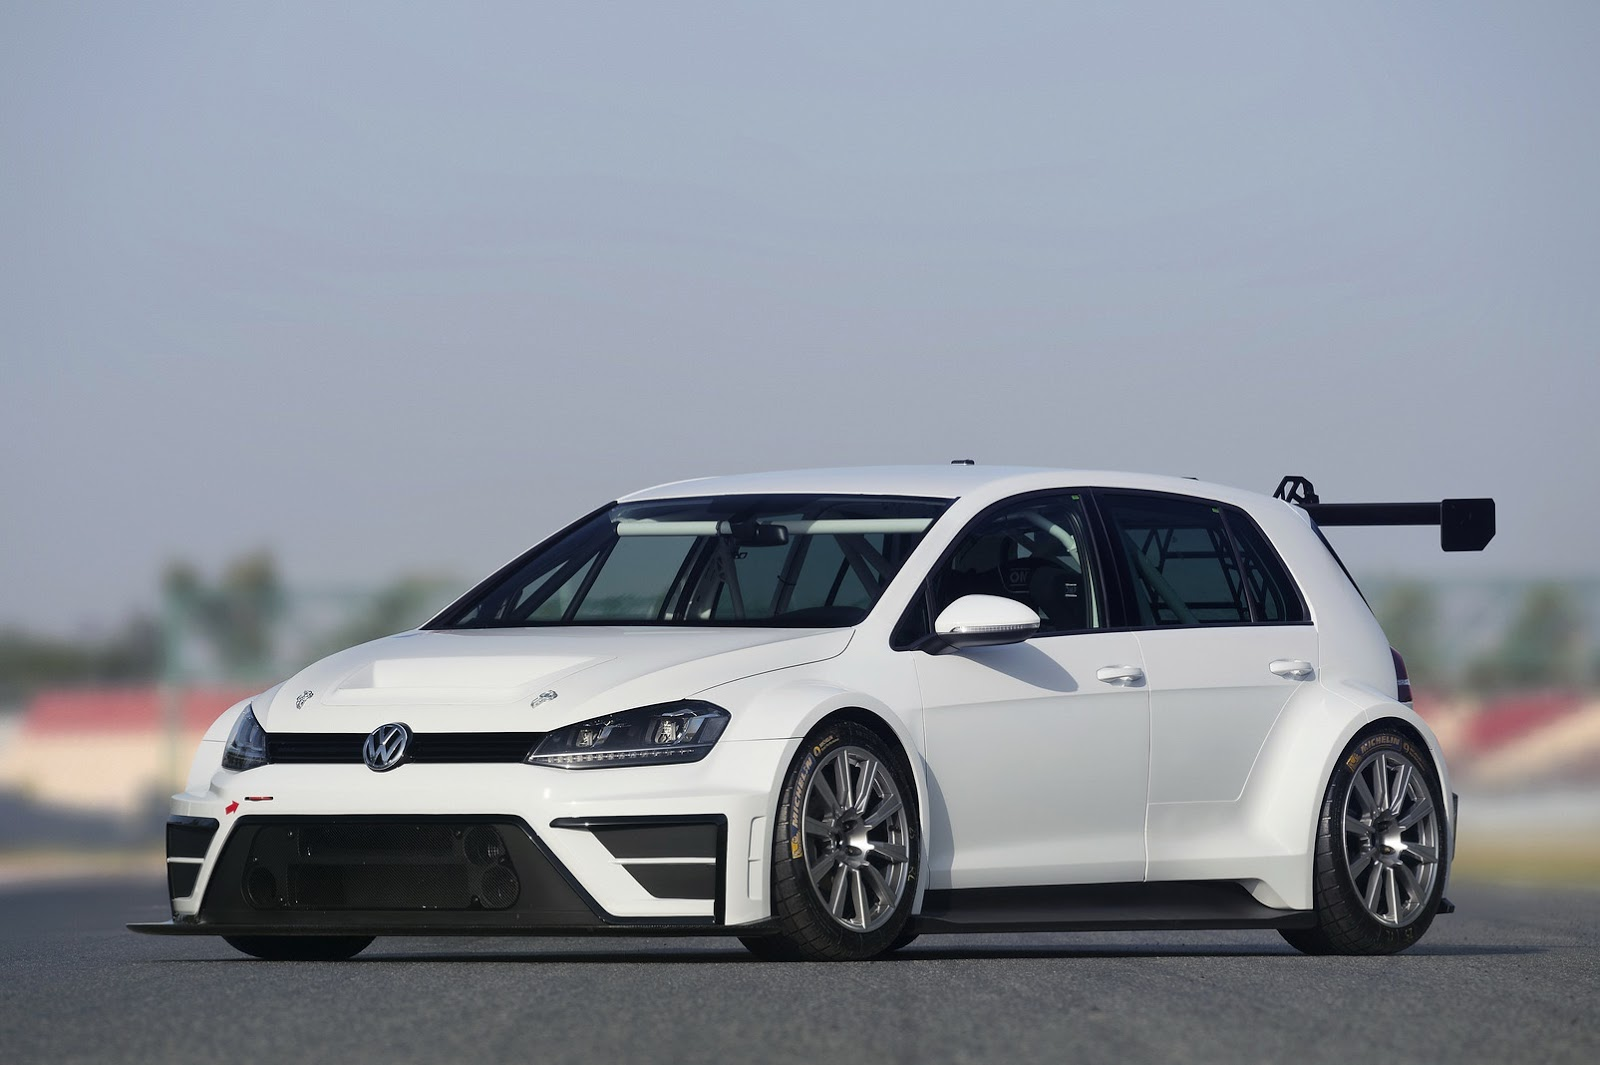 new vw golf tcr for the track makes r400 concept look timid carscoops. Black Bedroom Furniture Sets. Home Design Ideas